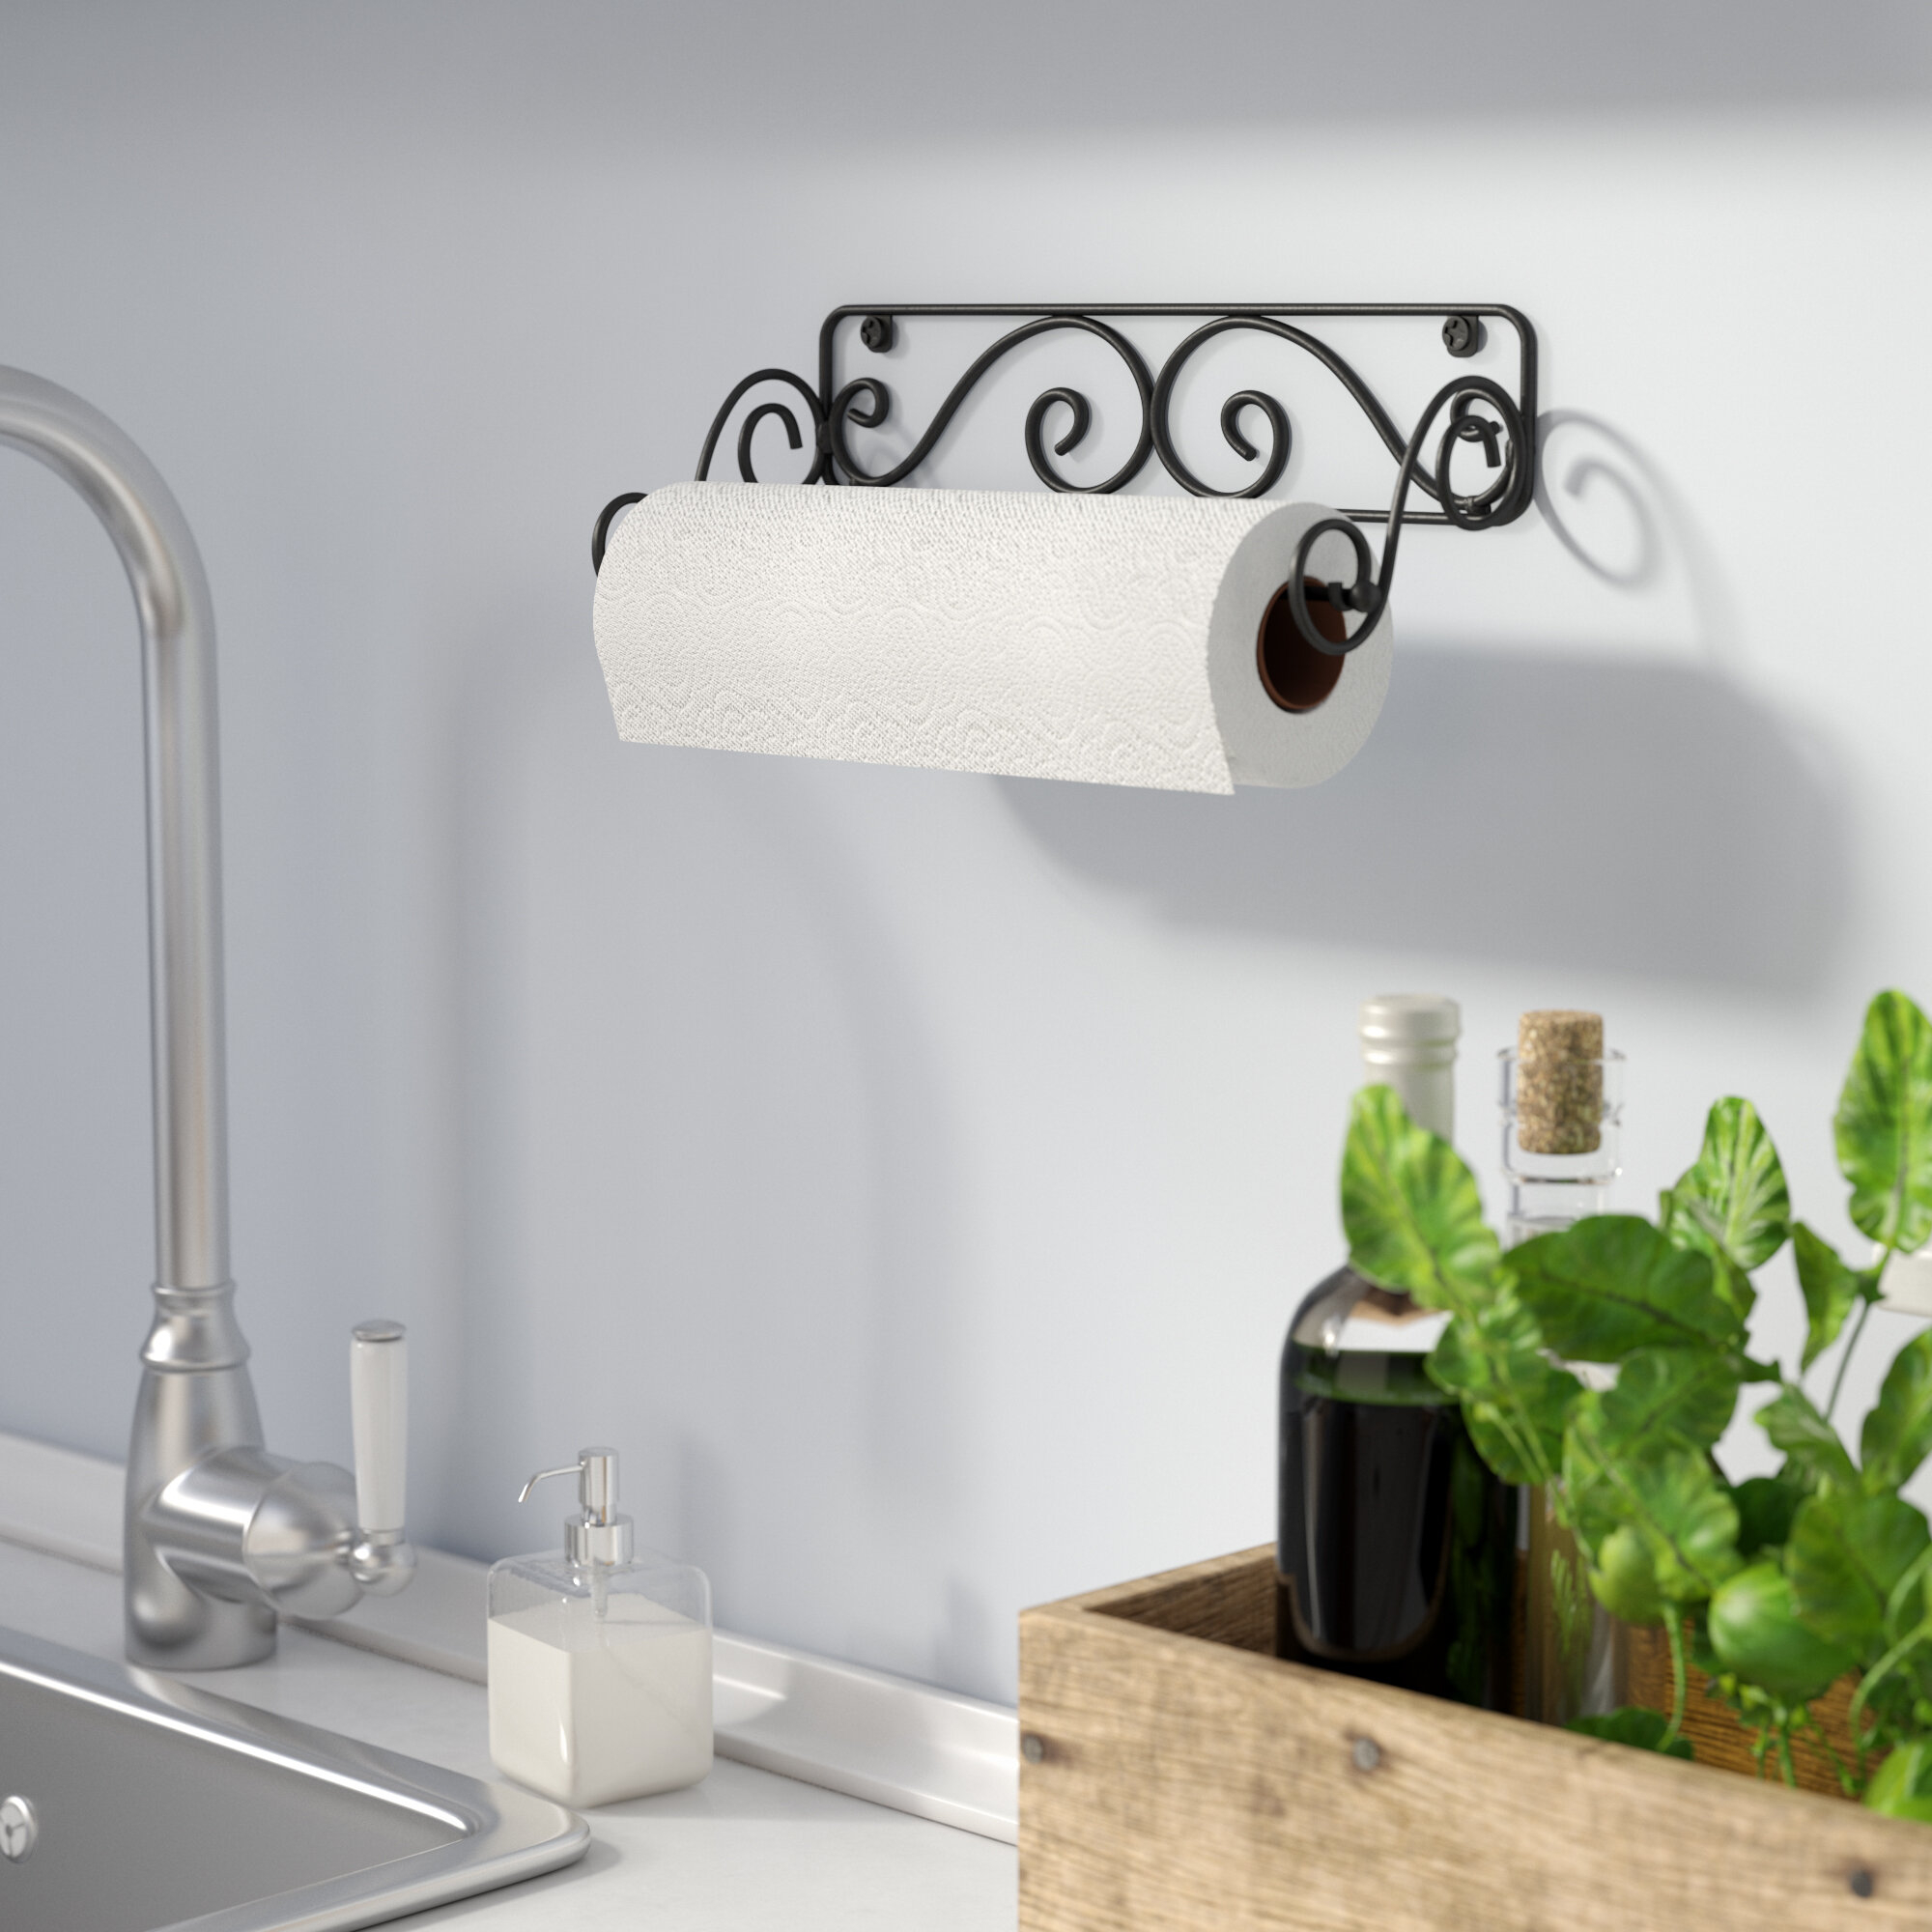 Black Scrollwork Paper Towel Holder